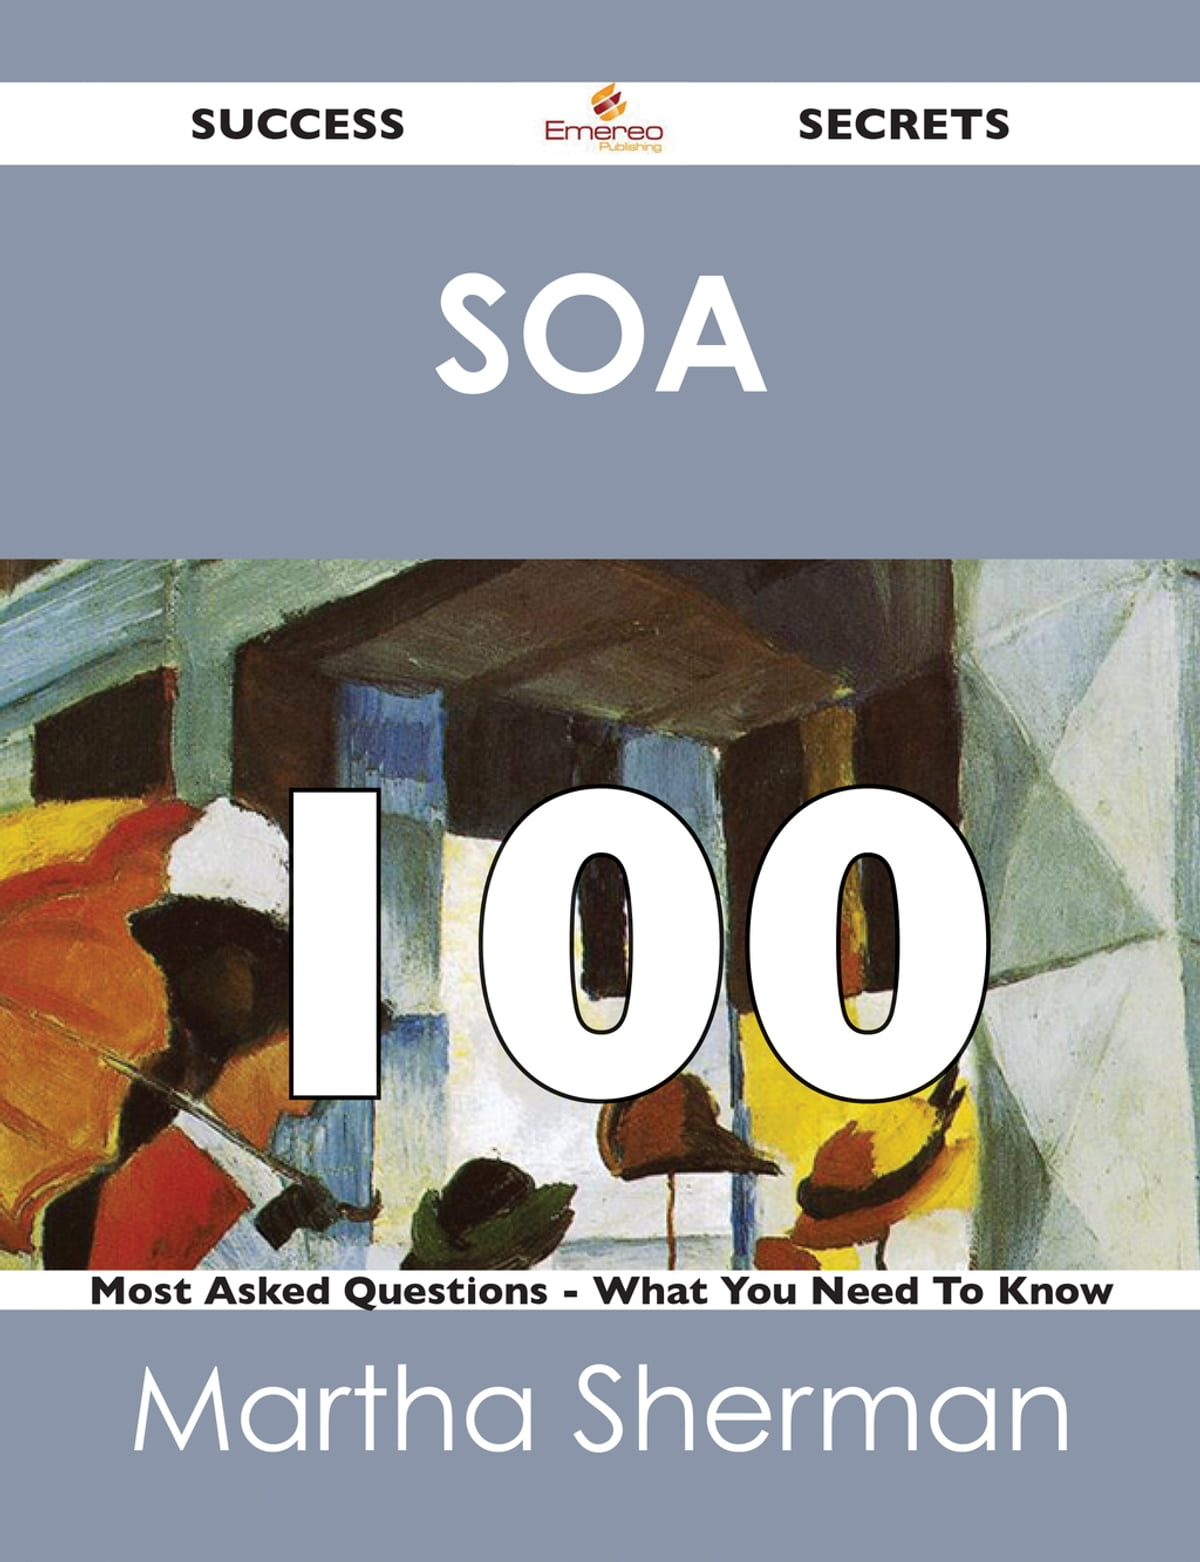 SOA 100 Success Secrets - 100 Most Asked Questions On SOA - What You Need  To Know eBook by Martha Sherman - 9781488515934 | Rakuten Kobo